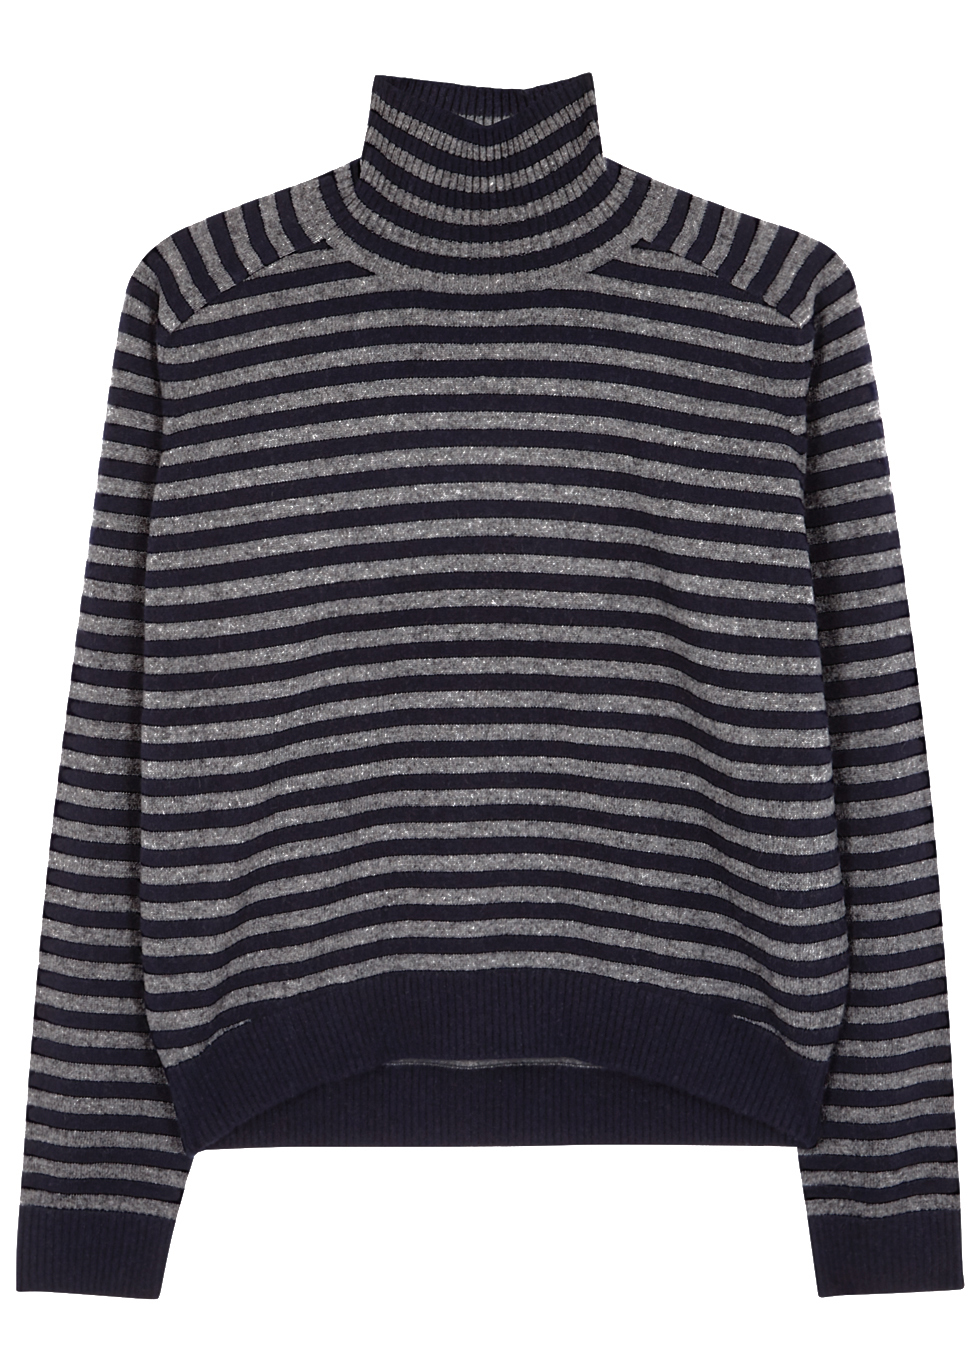 Navy Striped Cashmere Jumper - pattern: horizontal stripes; neckline: roll neck; style: standard; secondary colour: mid grey; predominant colour: black; occasions: casual; length: standard; fit: loose; fibres: cashmere - 100%; sleeve length: long sleeve; sleeve style: standard; texture group: knits/crochet; pattern type: fabric; multicoloured: multicoloured; season: a/w 2016; wardrobe: highlight